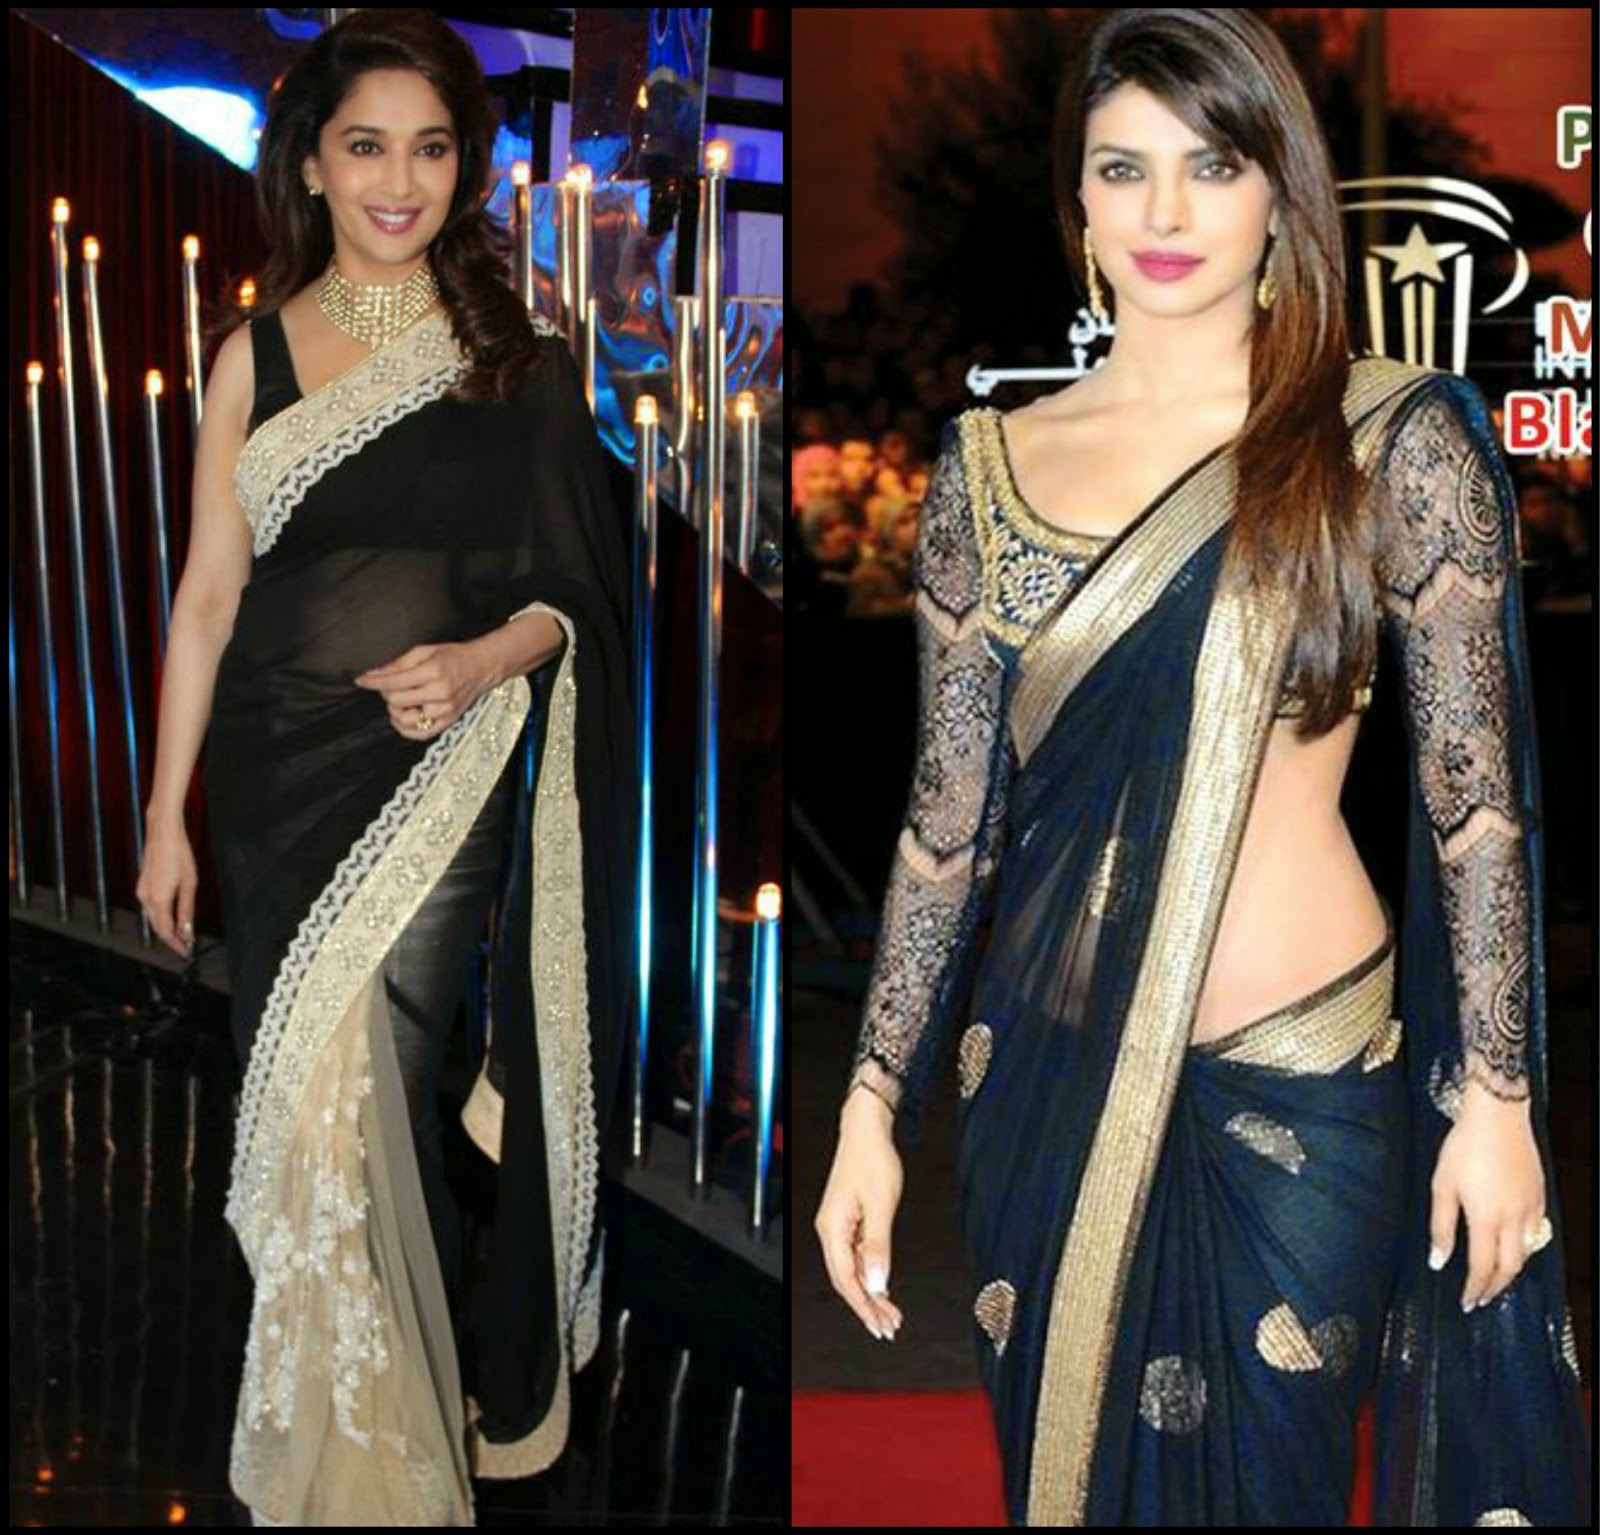 Madhuri & Priyanka in black saree, Celebs in sabyasachi sarees, celebs in black saree